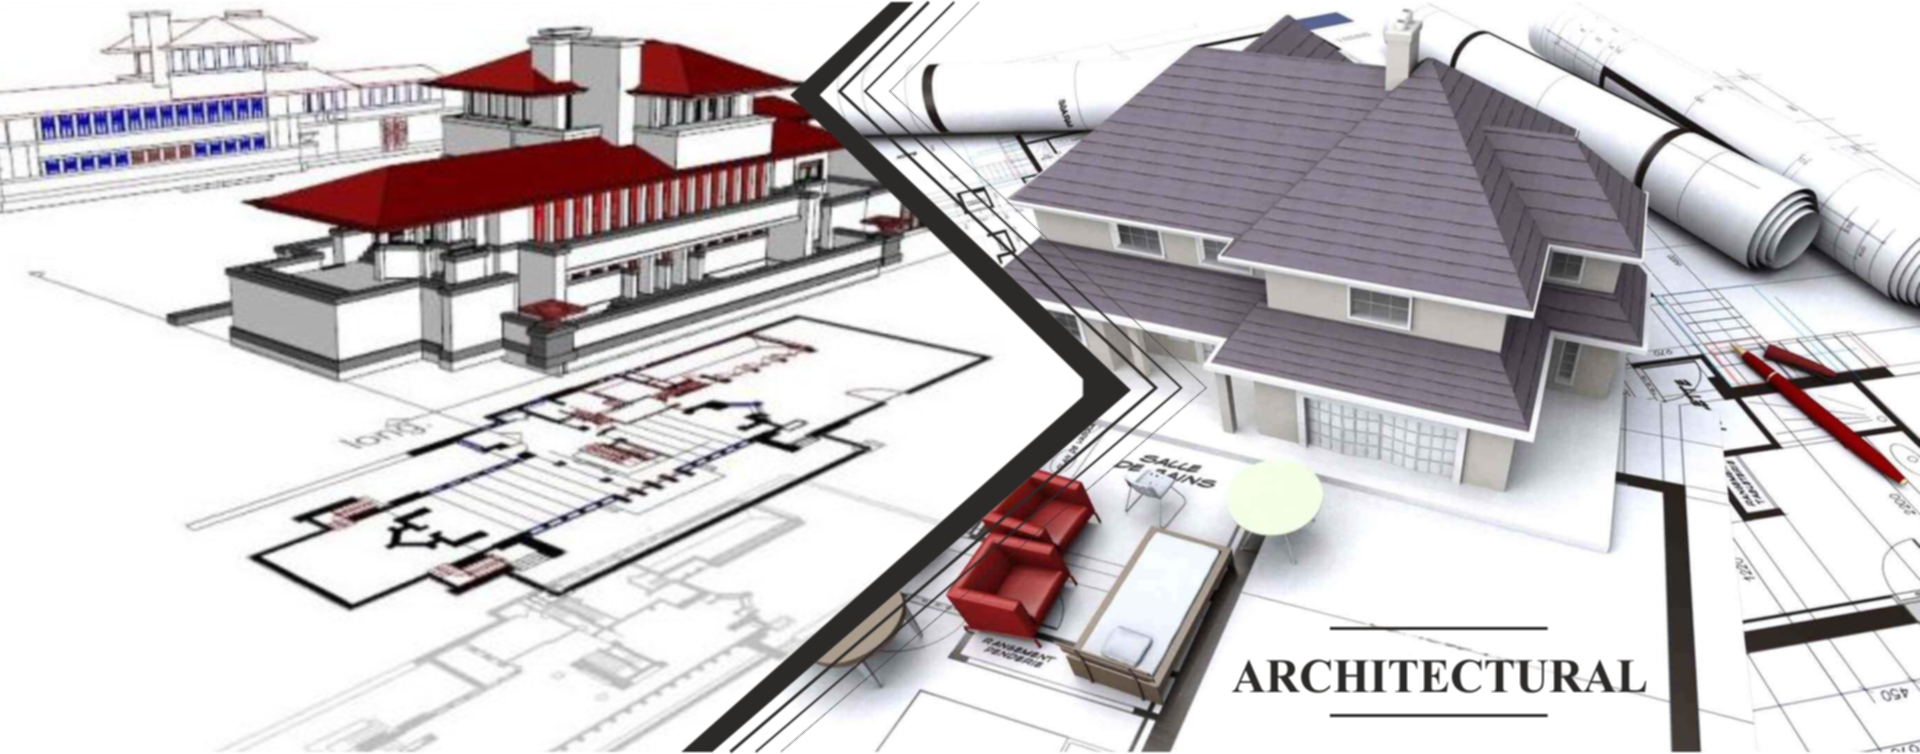 How important are architectural drafting services